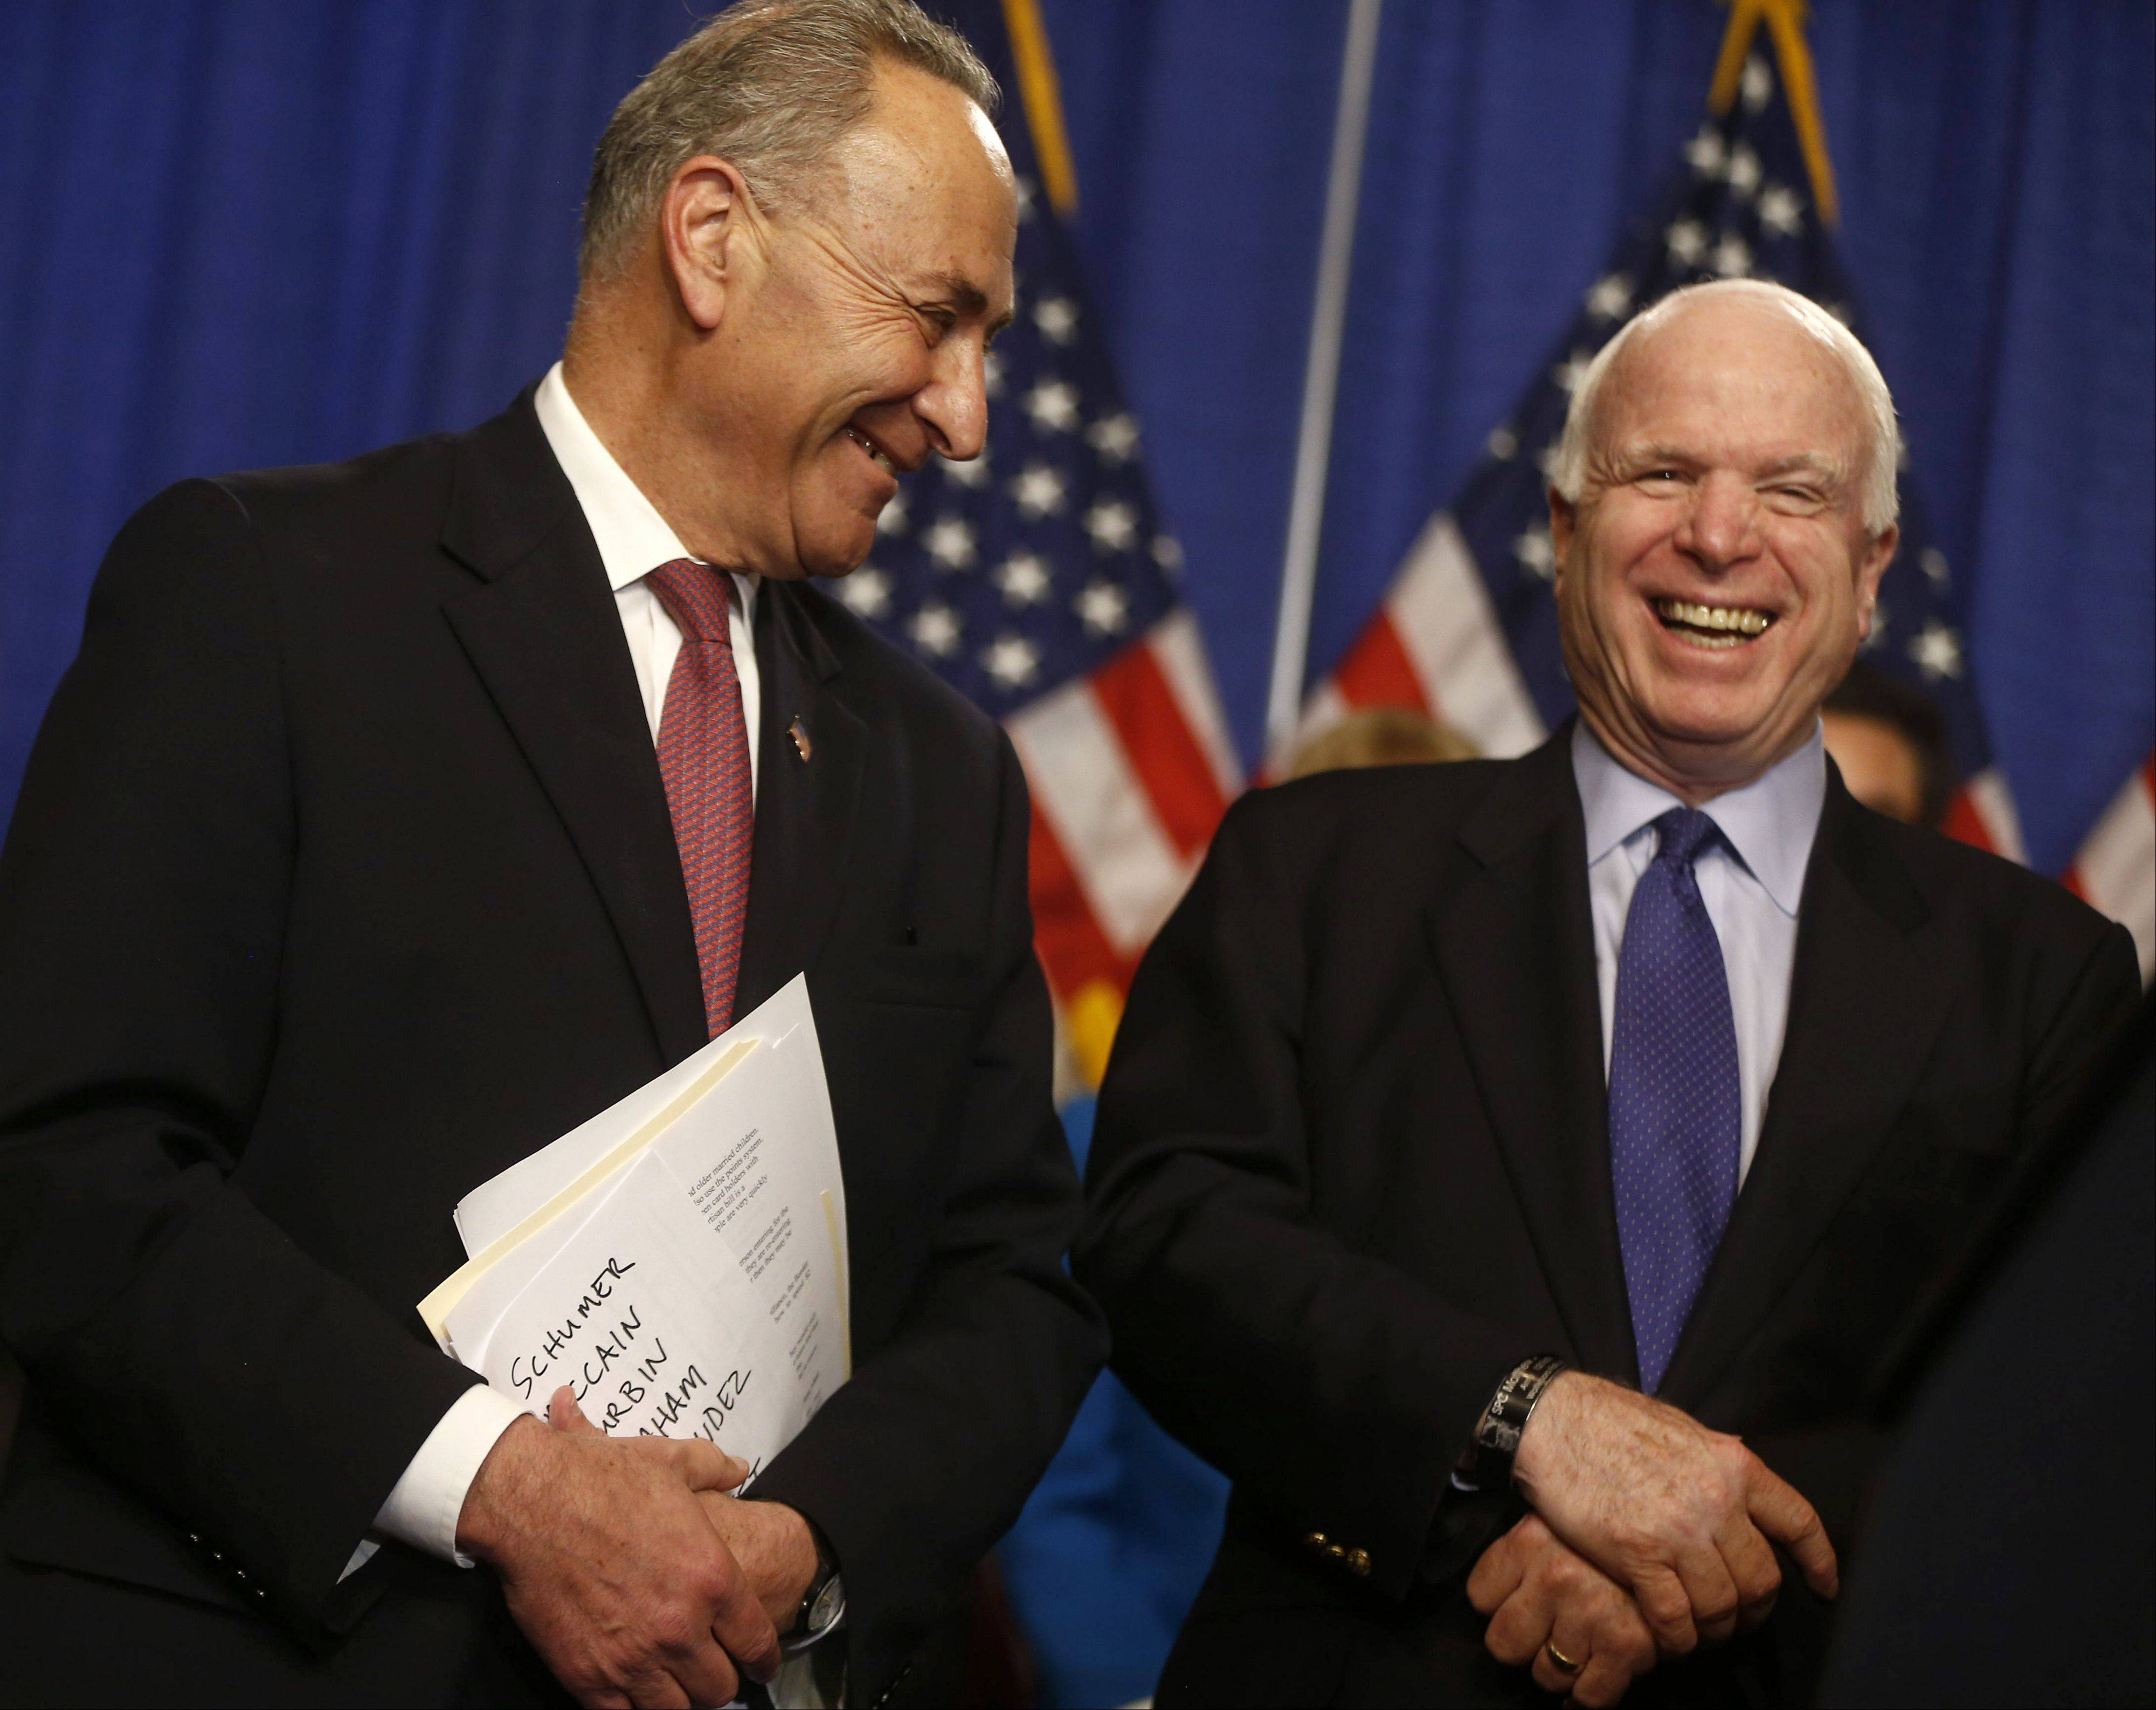 Sen. Charles Schumer, left, and Sen. John McCain discussed a wide-ranging immigration bill they helped craft with support from business executives, religious leaders, activists and others.